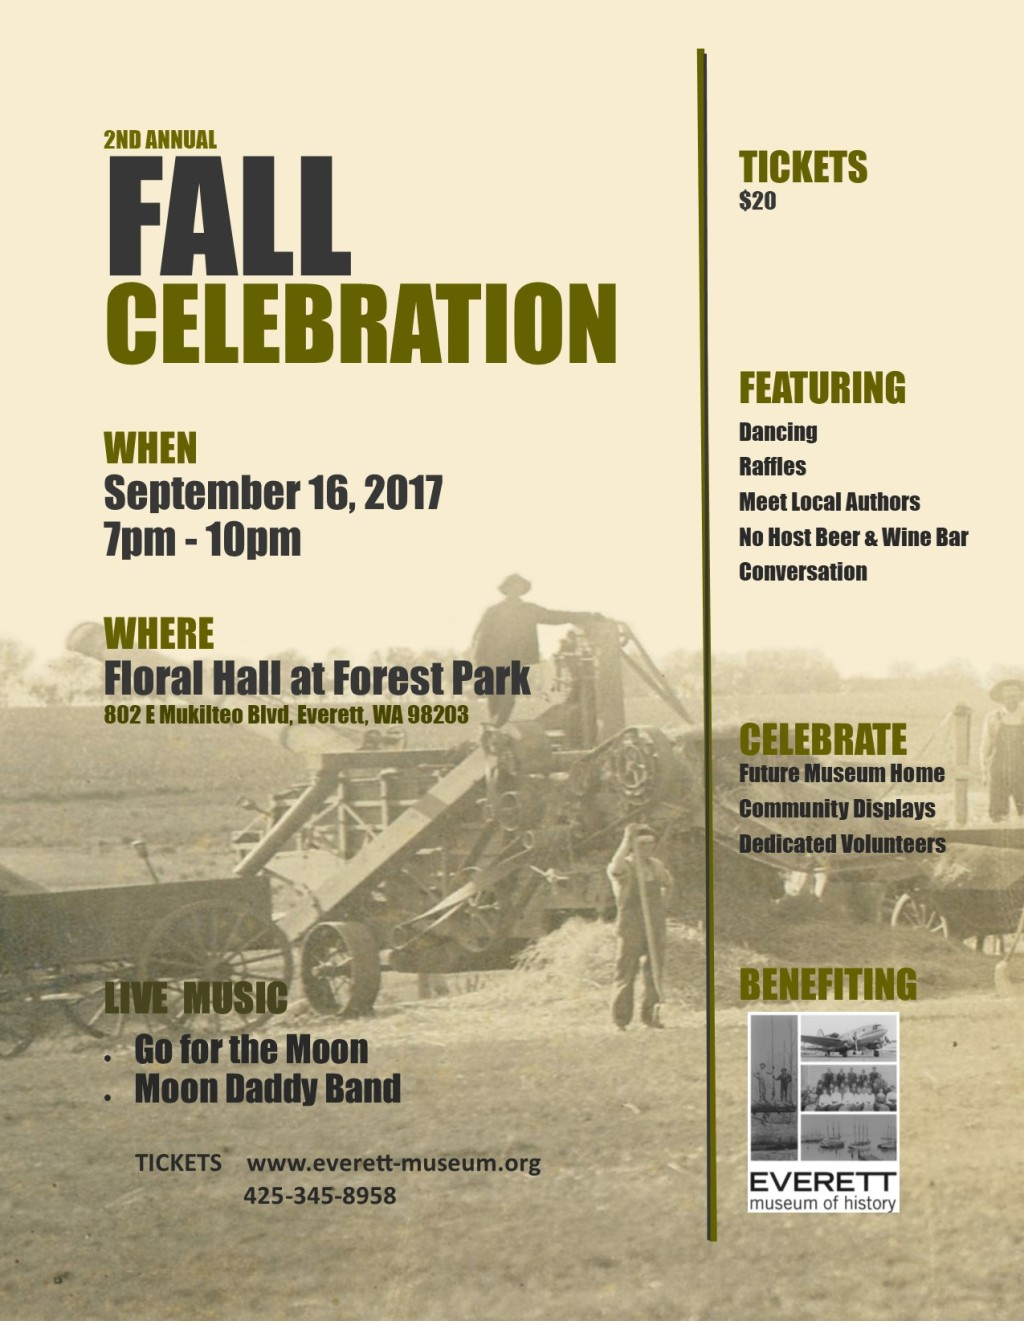 2nd Fall Celebration Flyer